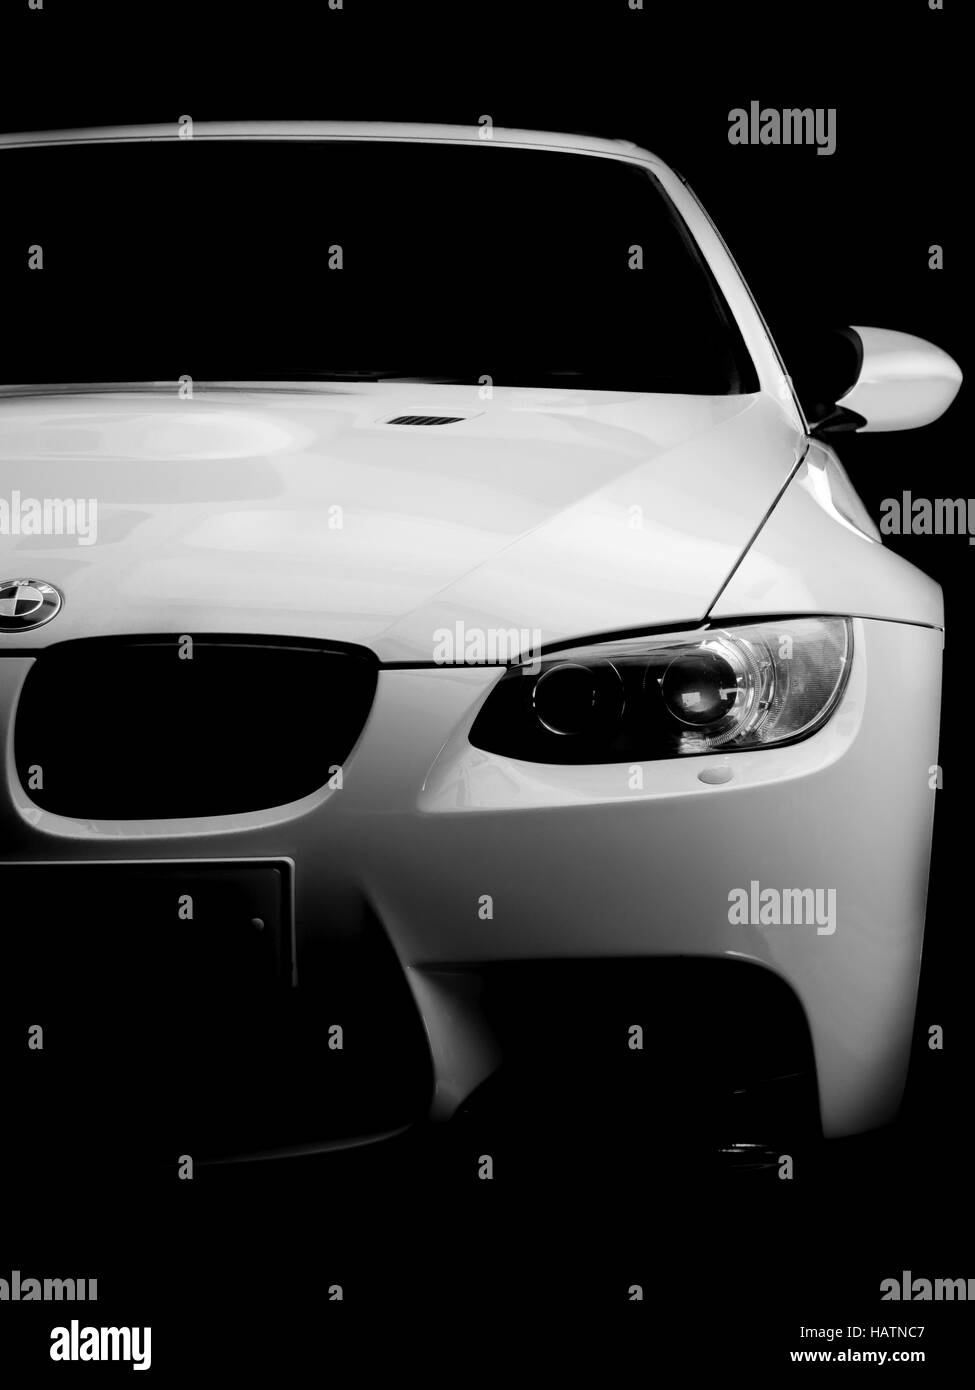 BMW E92 M3 3-Series - Stock Image